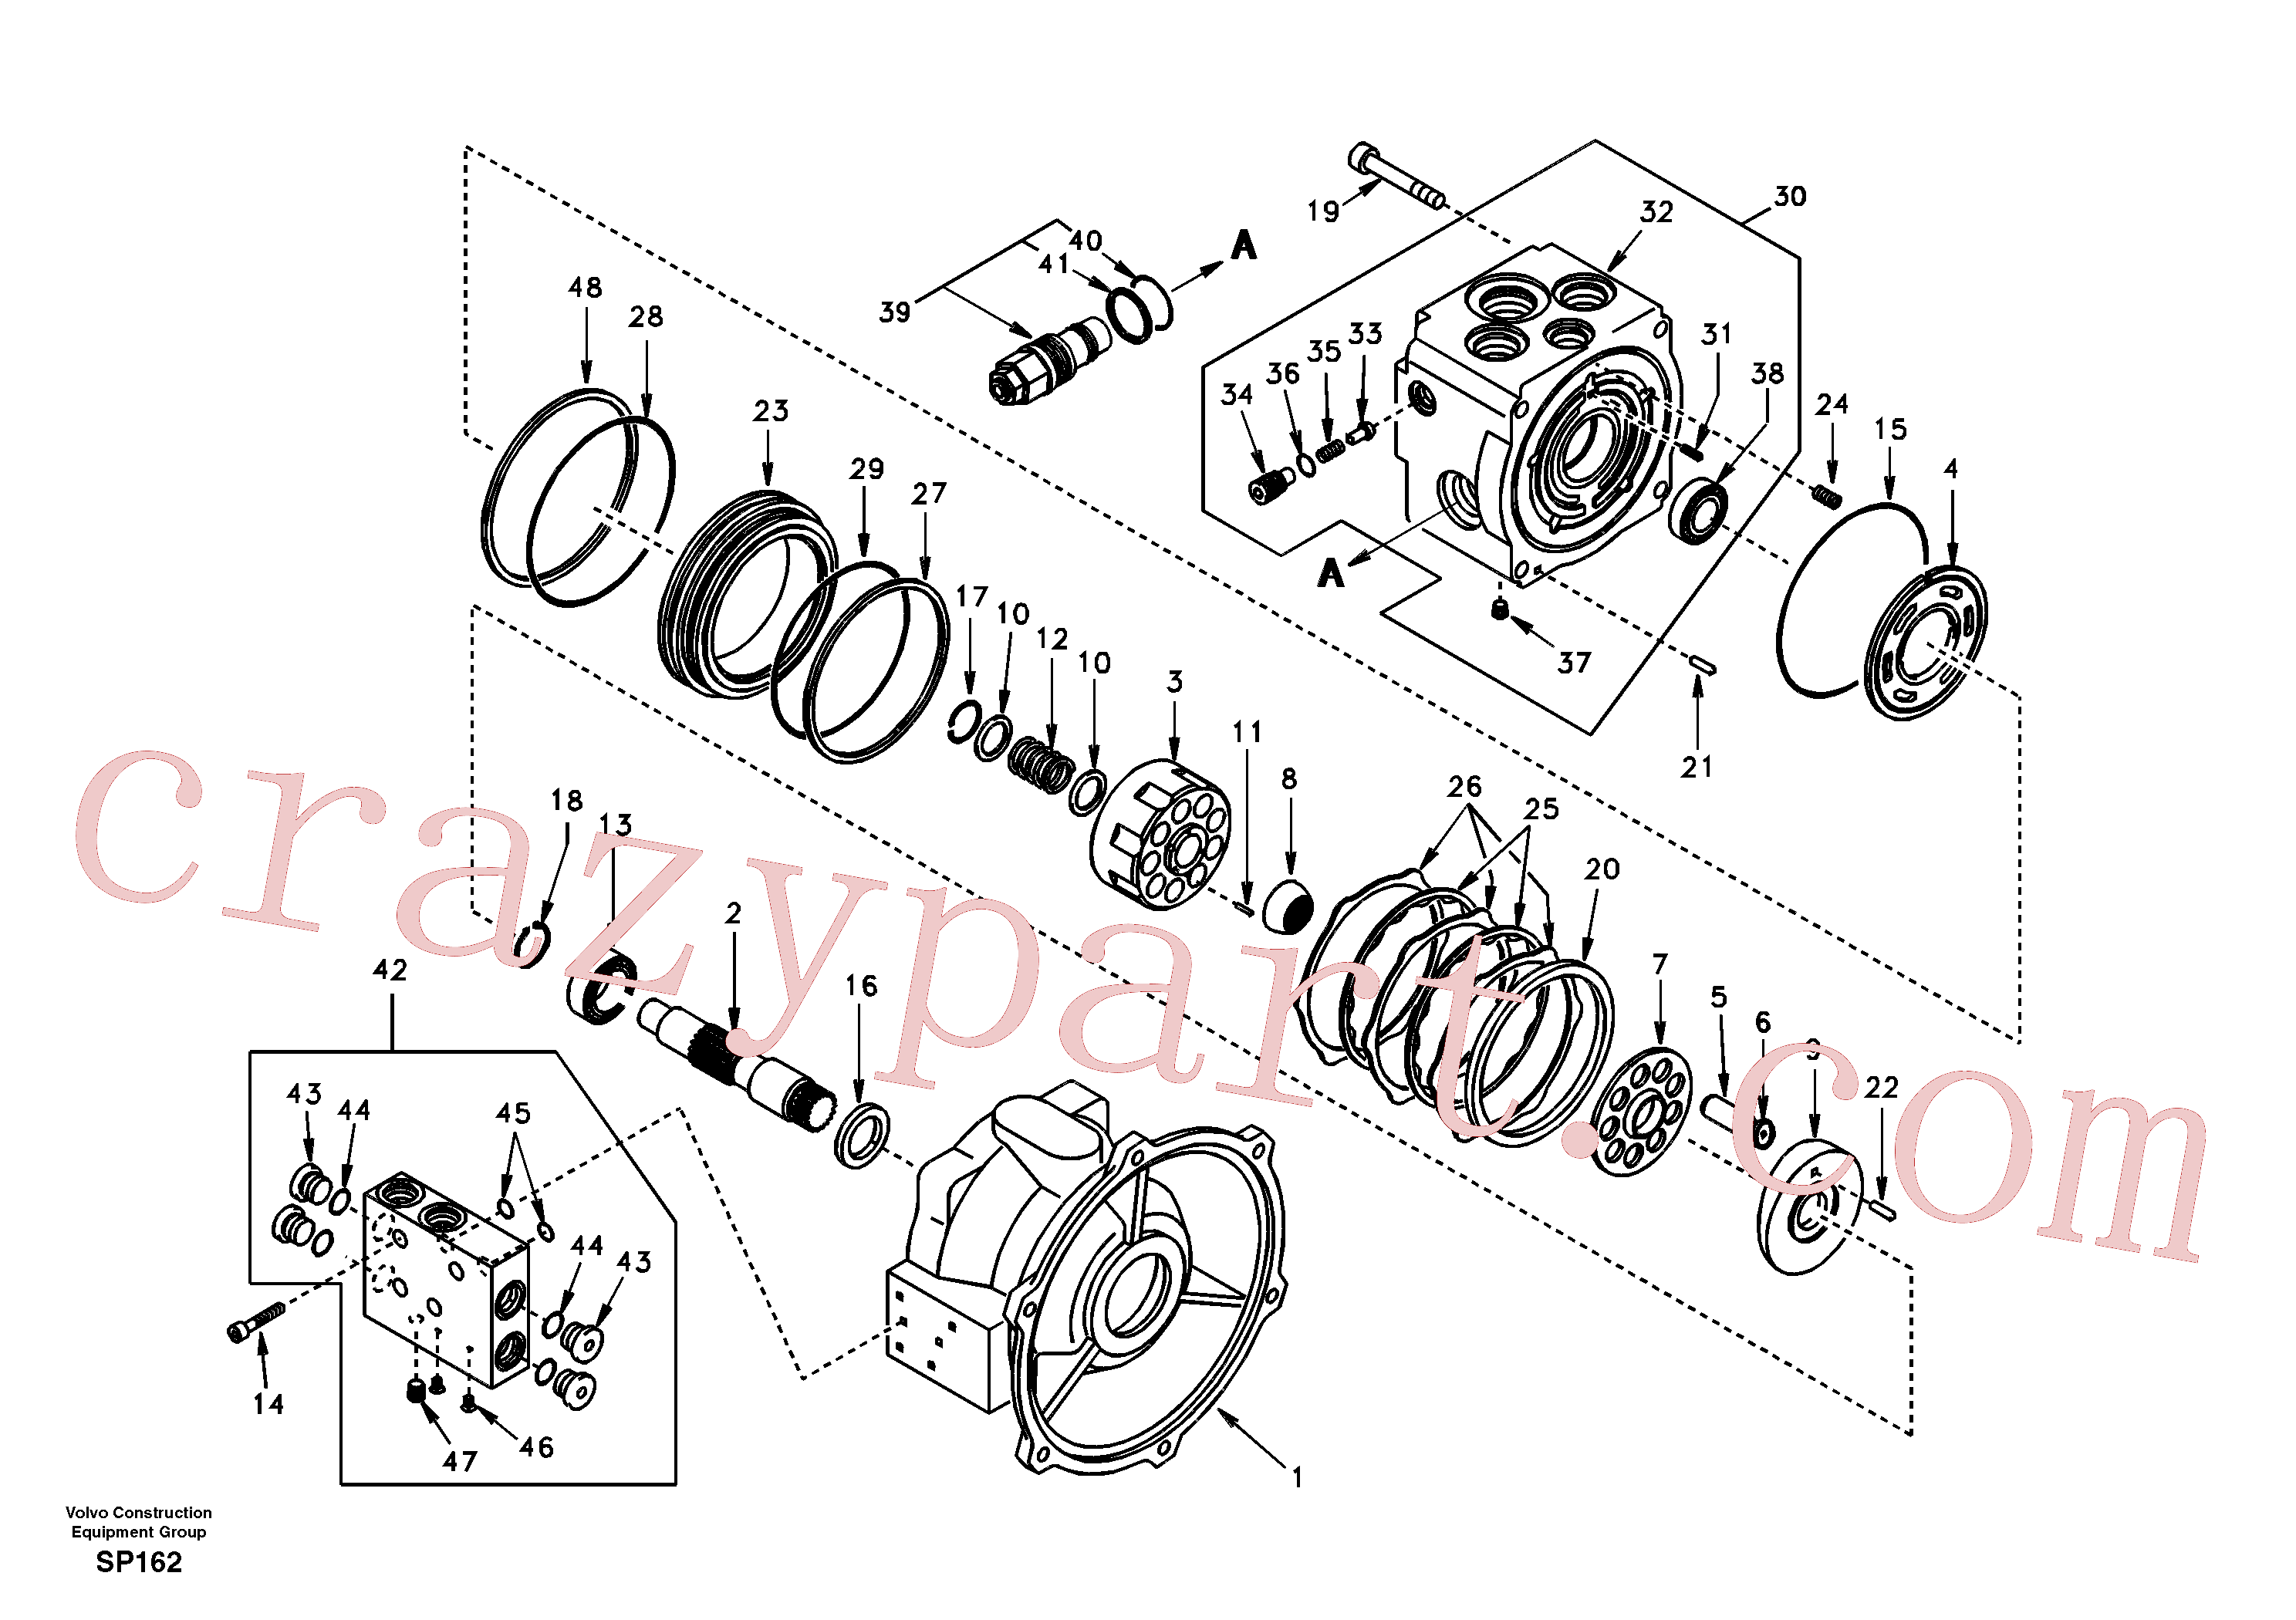 SA9511-22115 for Volvo Swing motor(SP162 assembly)